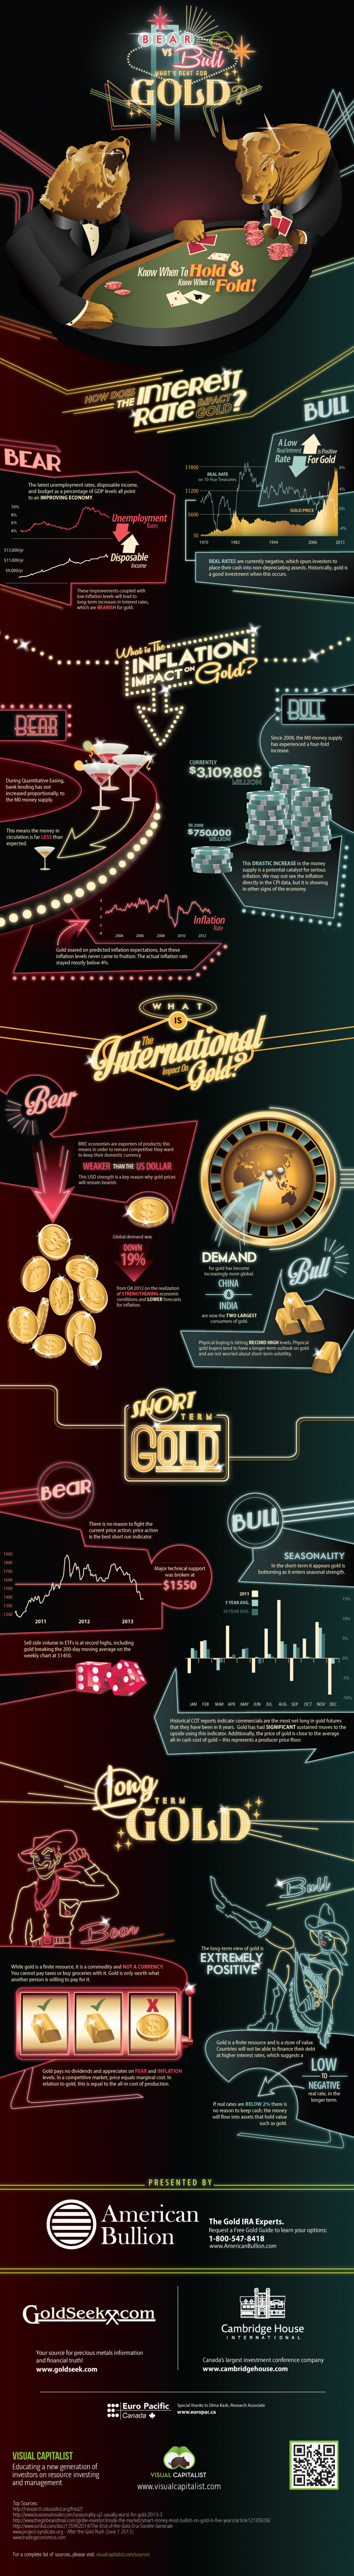 Bear vs Bull: What's Next for Gold? Infographic